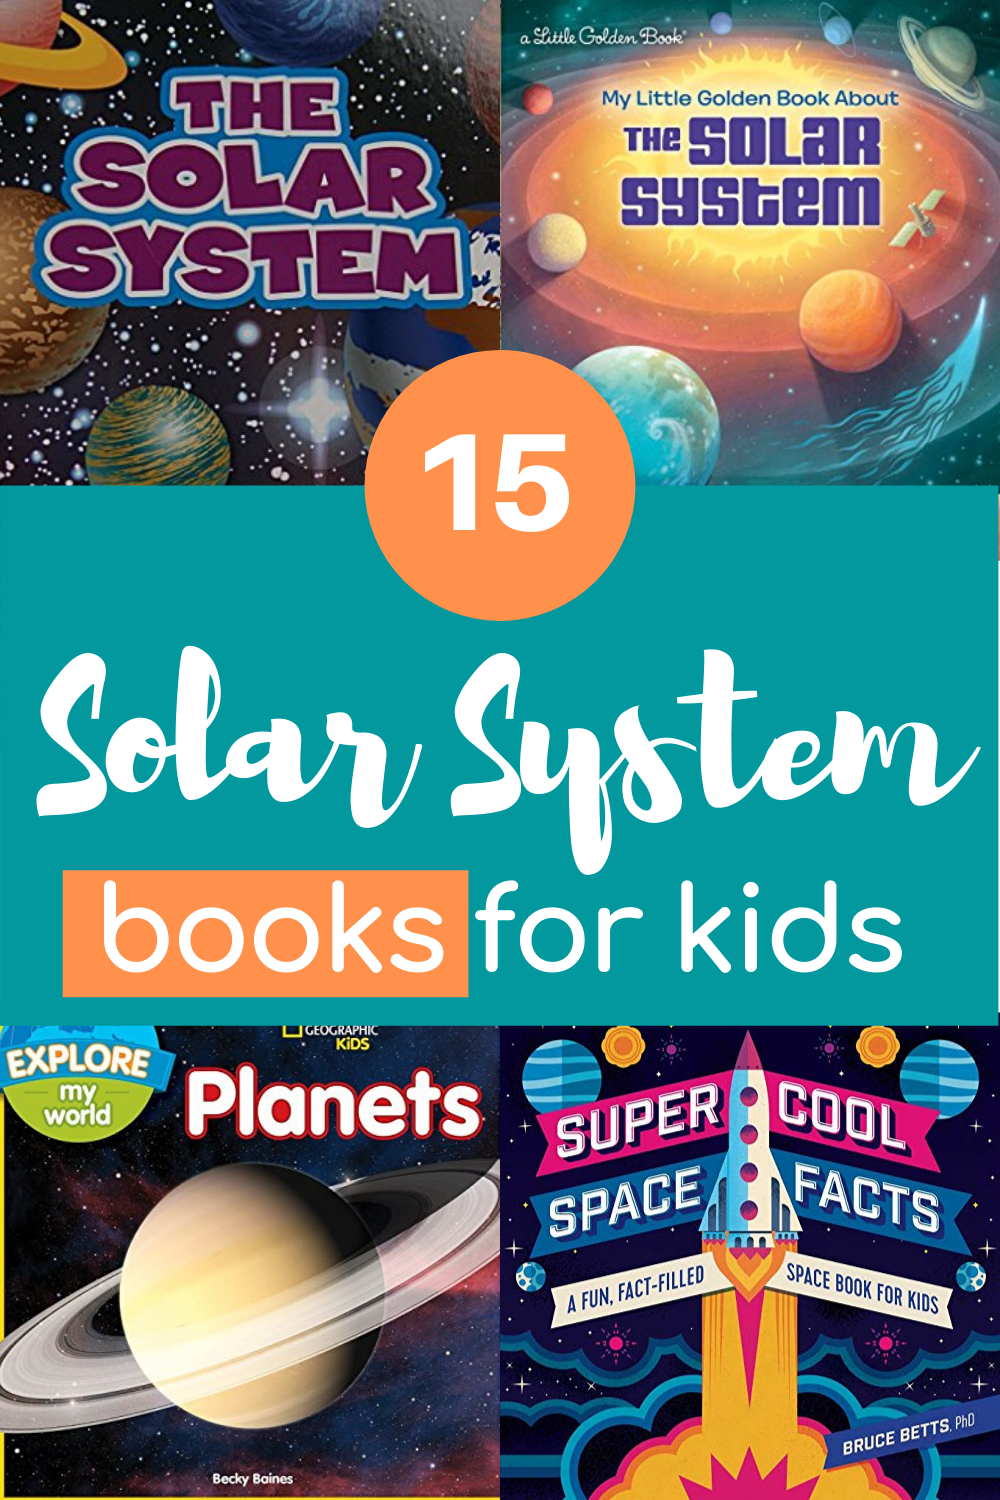 Your budding astronauts will love this collection of solar system books for kids! They'll love learning about the planets, stars, sun, and moon.